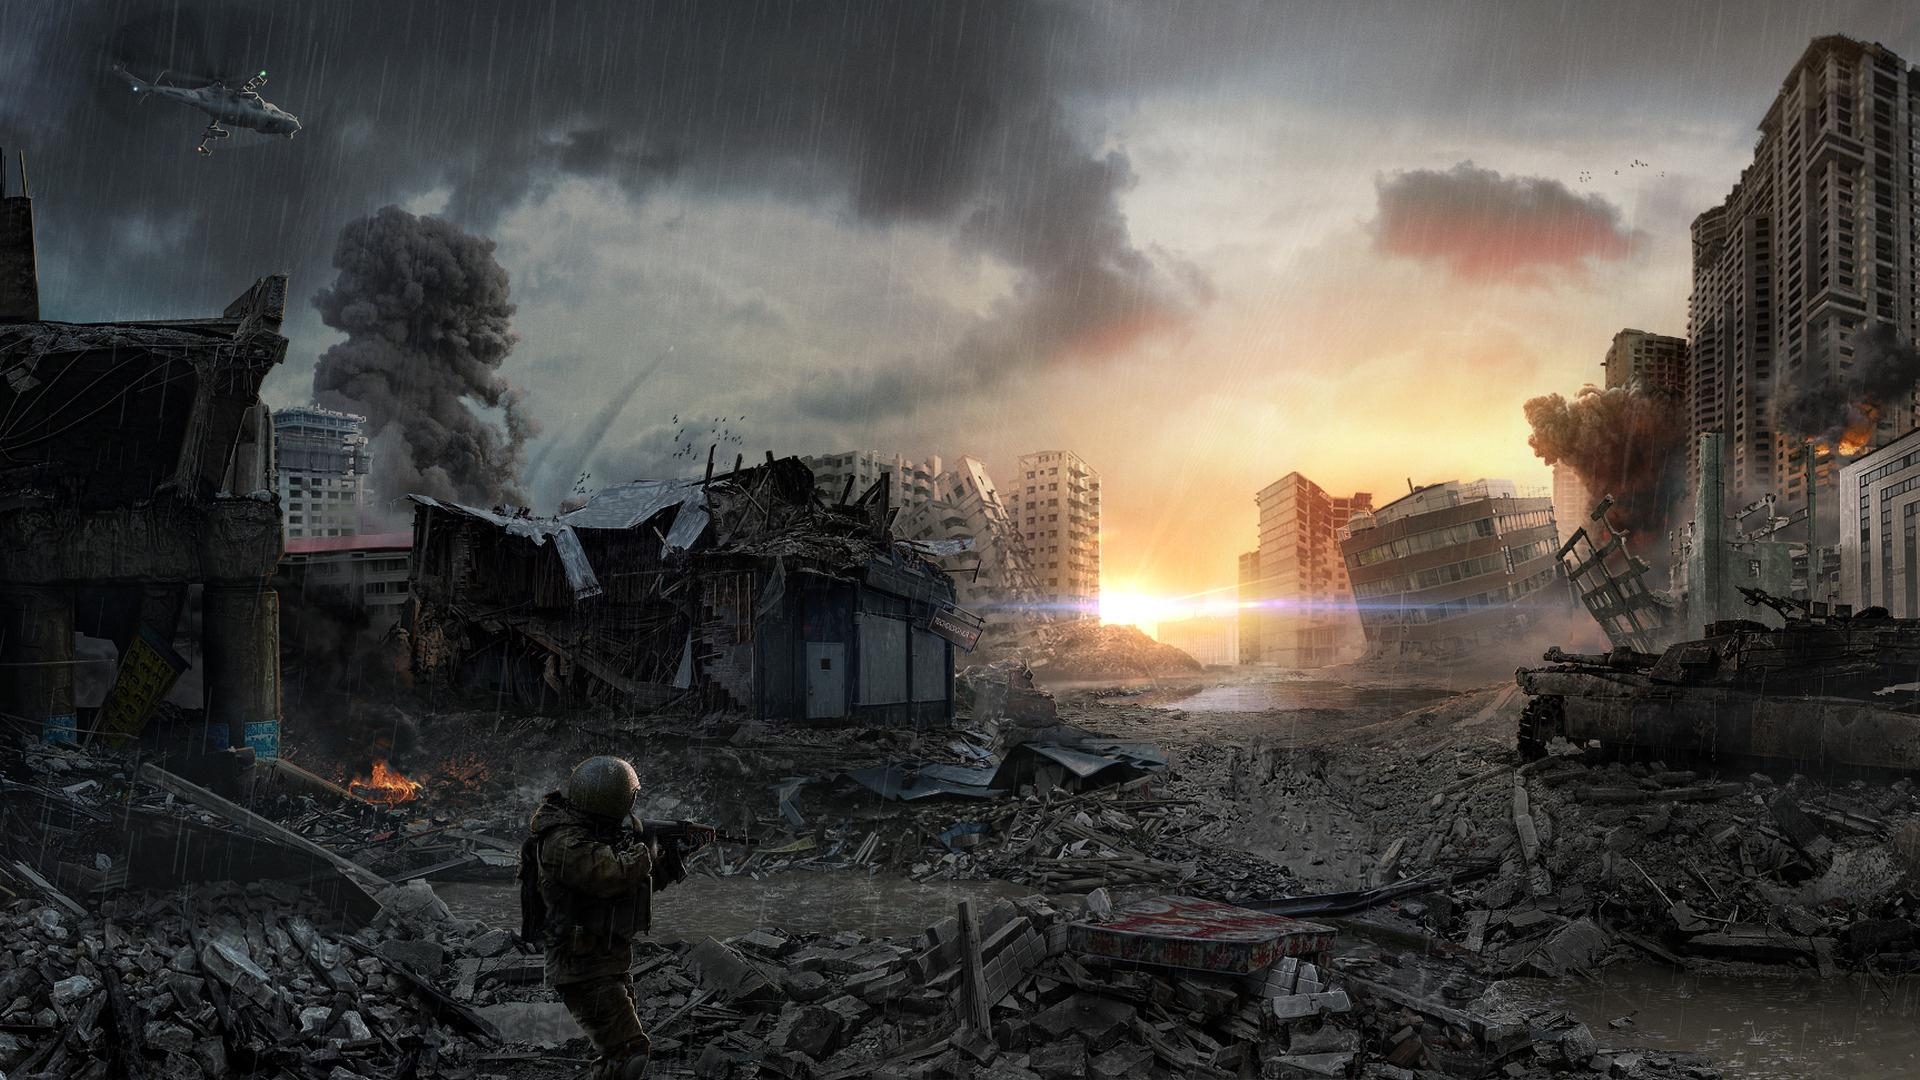 wallpapers are in 19201080 For more Apocalyptic wallpapers check 1920x1080